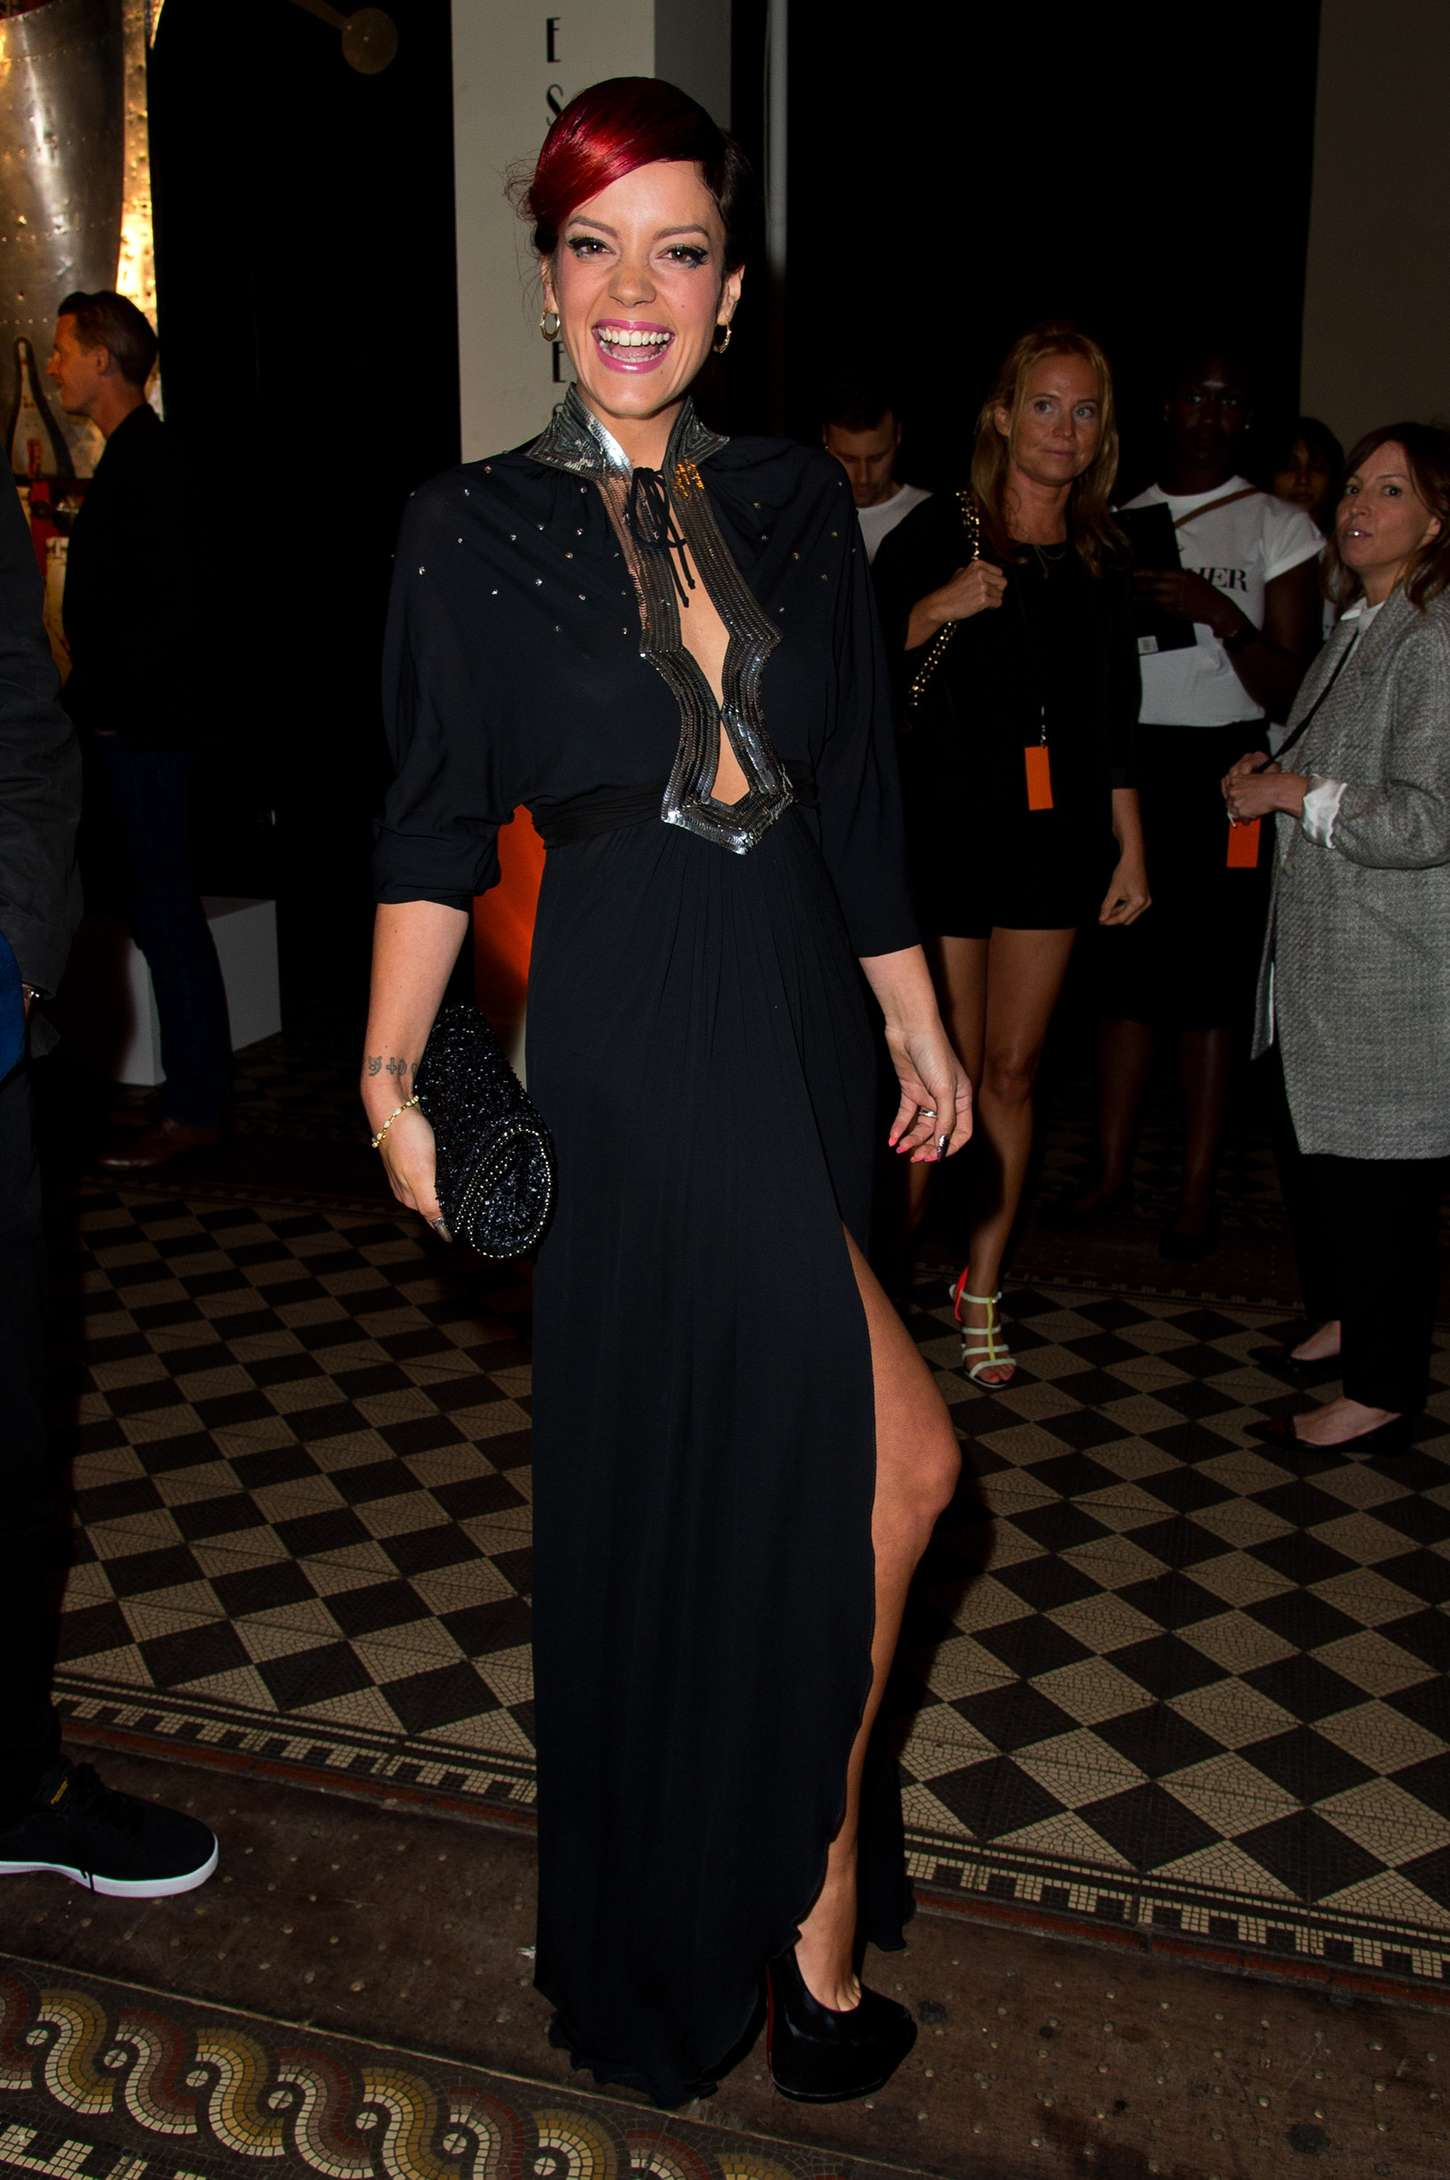 Lily Allen at The Other Ball Charity Evening in London